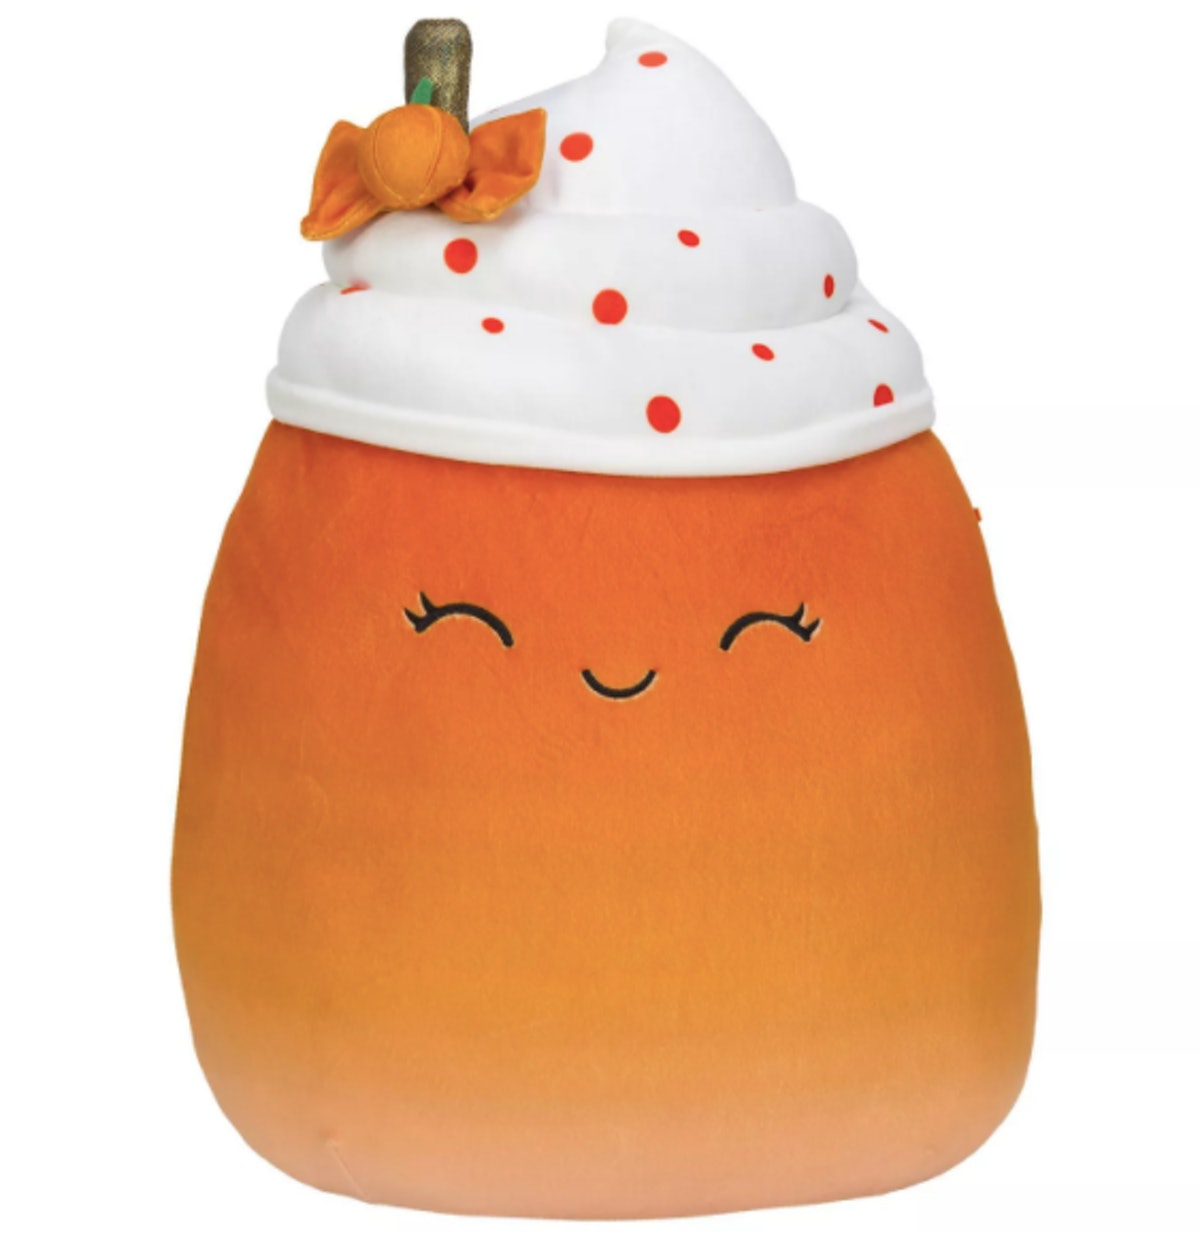 These Squishmallows for Halloween 2021 include a pumpkin spice version.